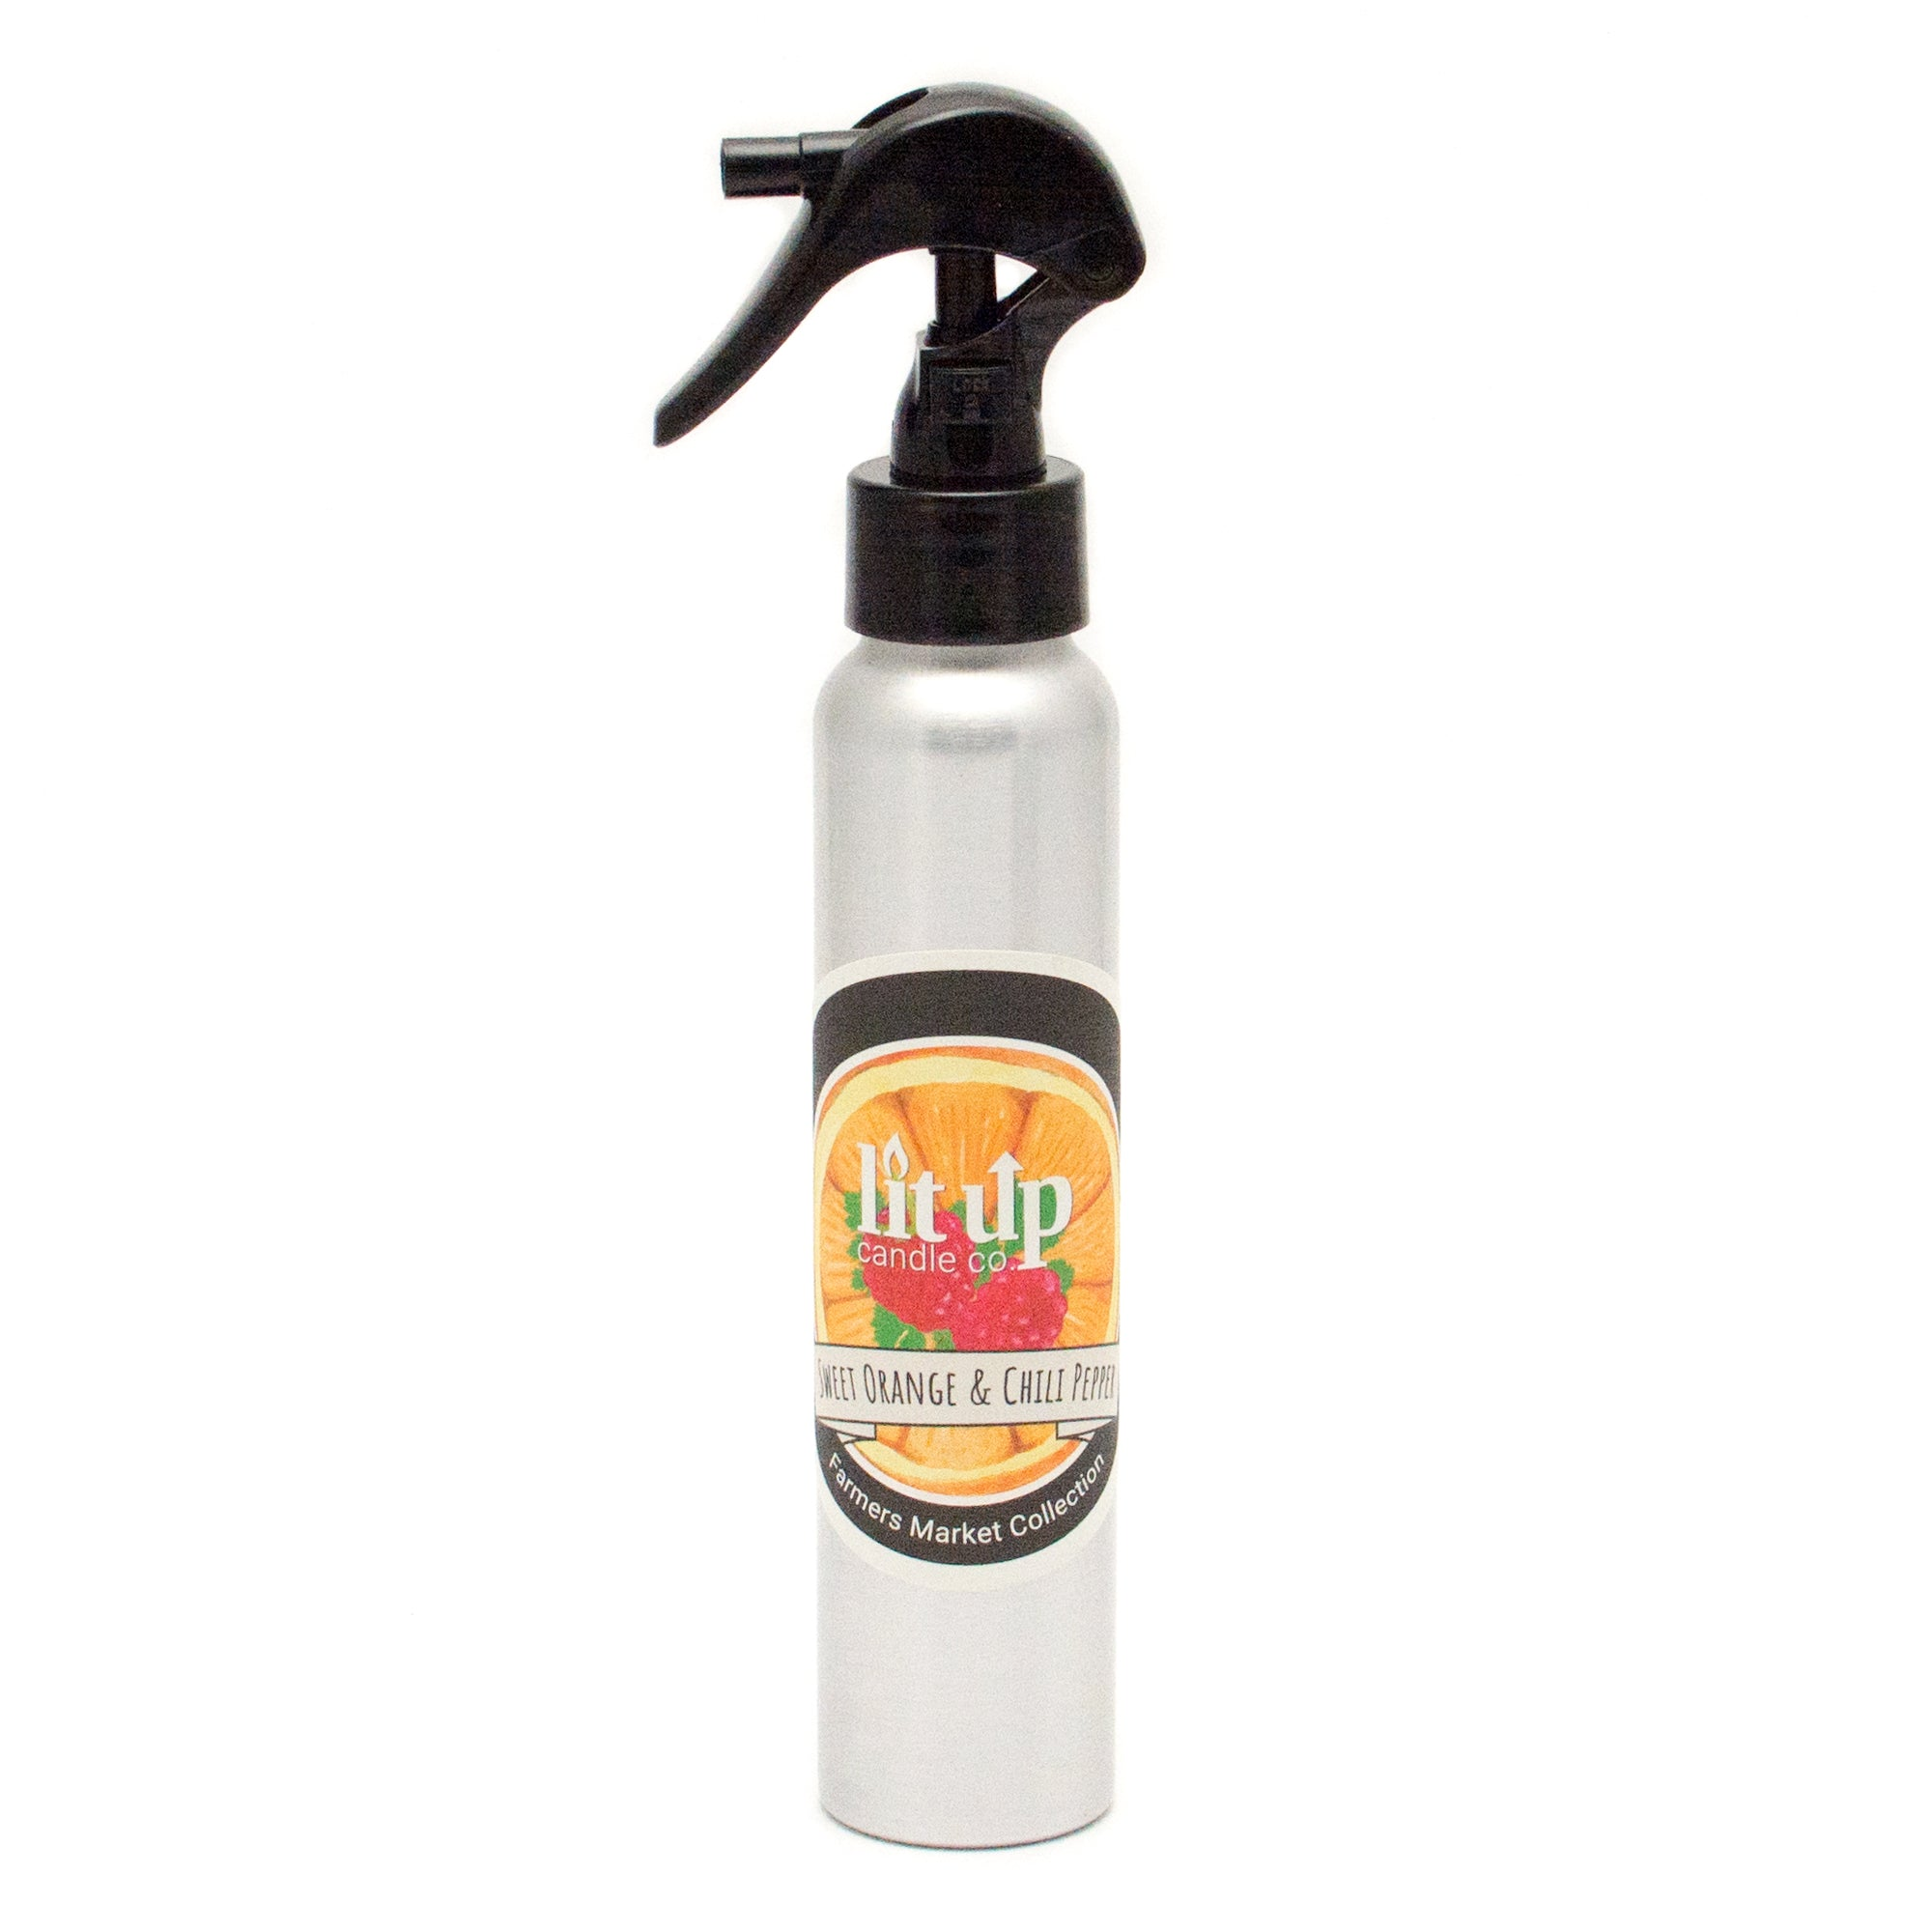 Sweet Orange & Chili Pepper Room Spray